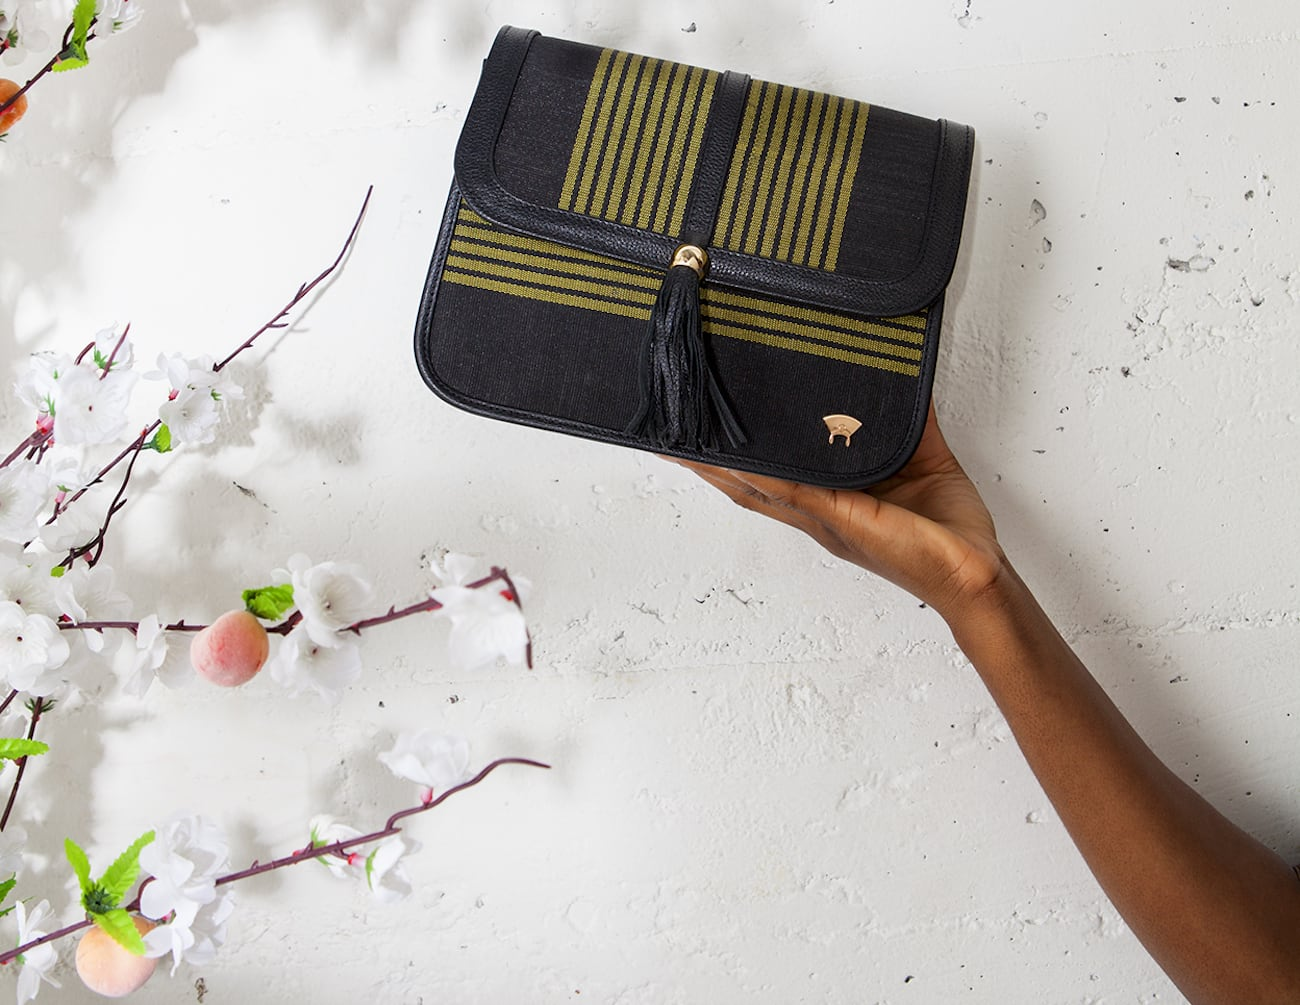 Olori Luxury African Handbags